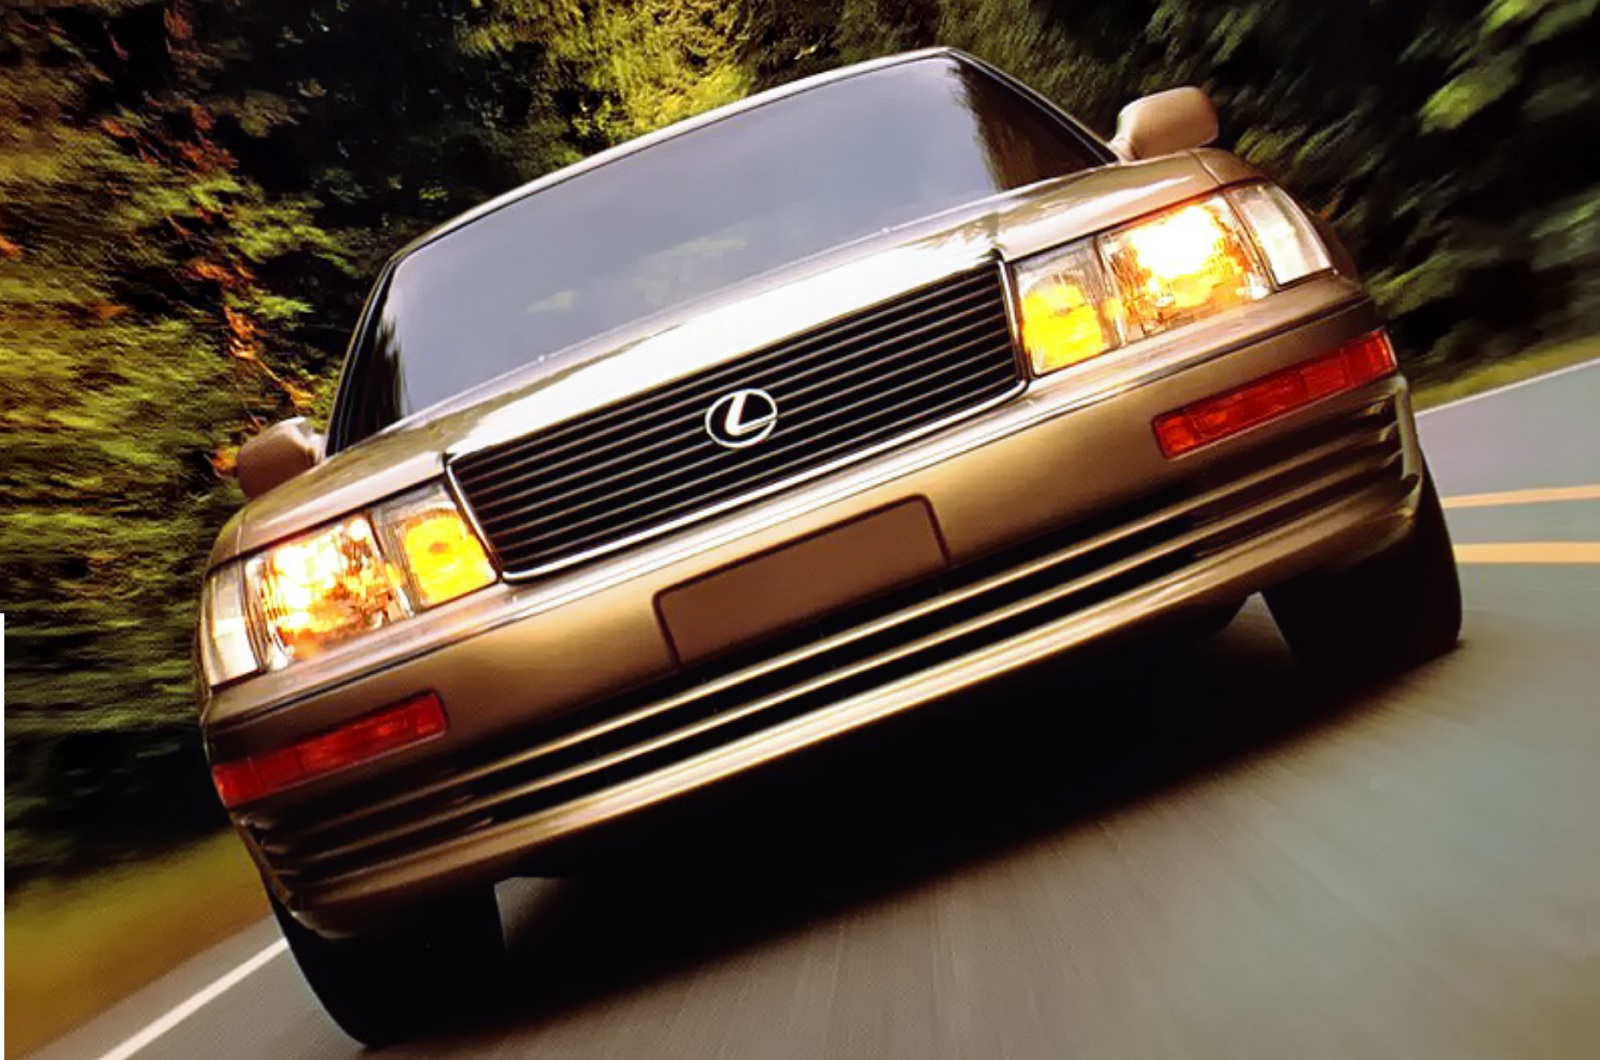 The luxury car class forever changed when Toyota launched its Lexus division in 1989.